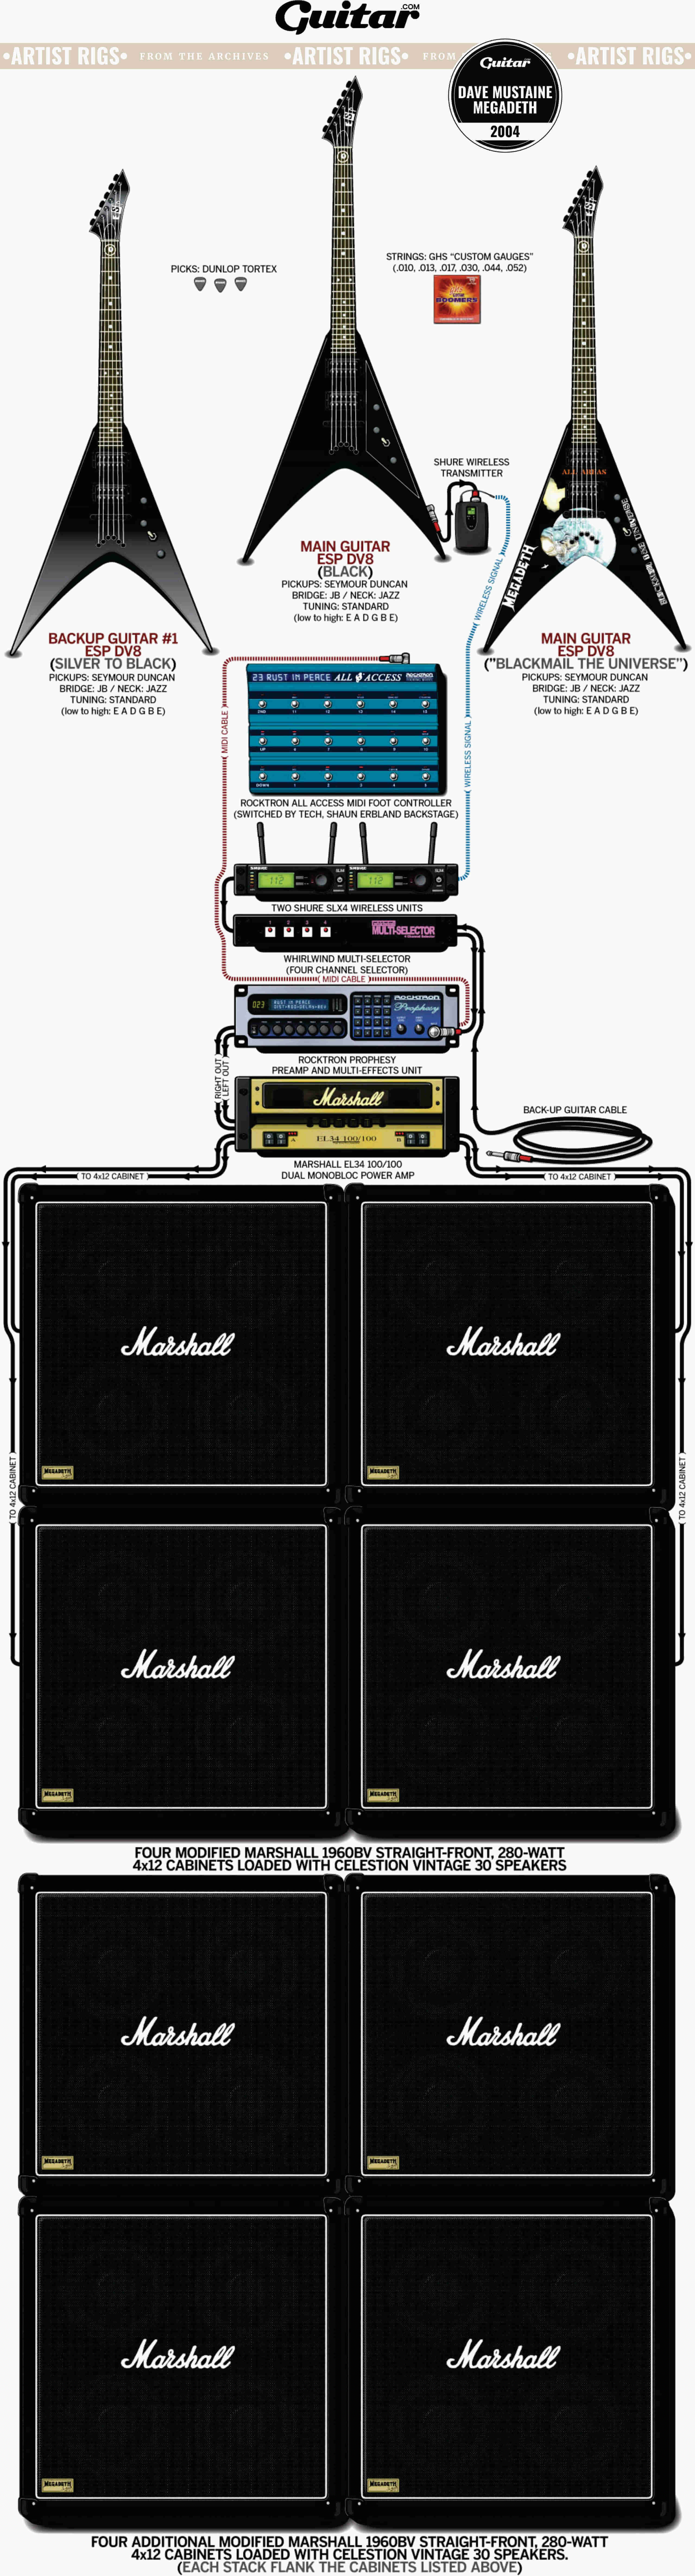 Rig Diagram: Dave Mustaine, Megadeth (2004)